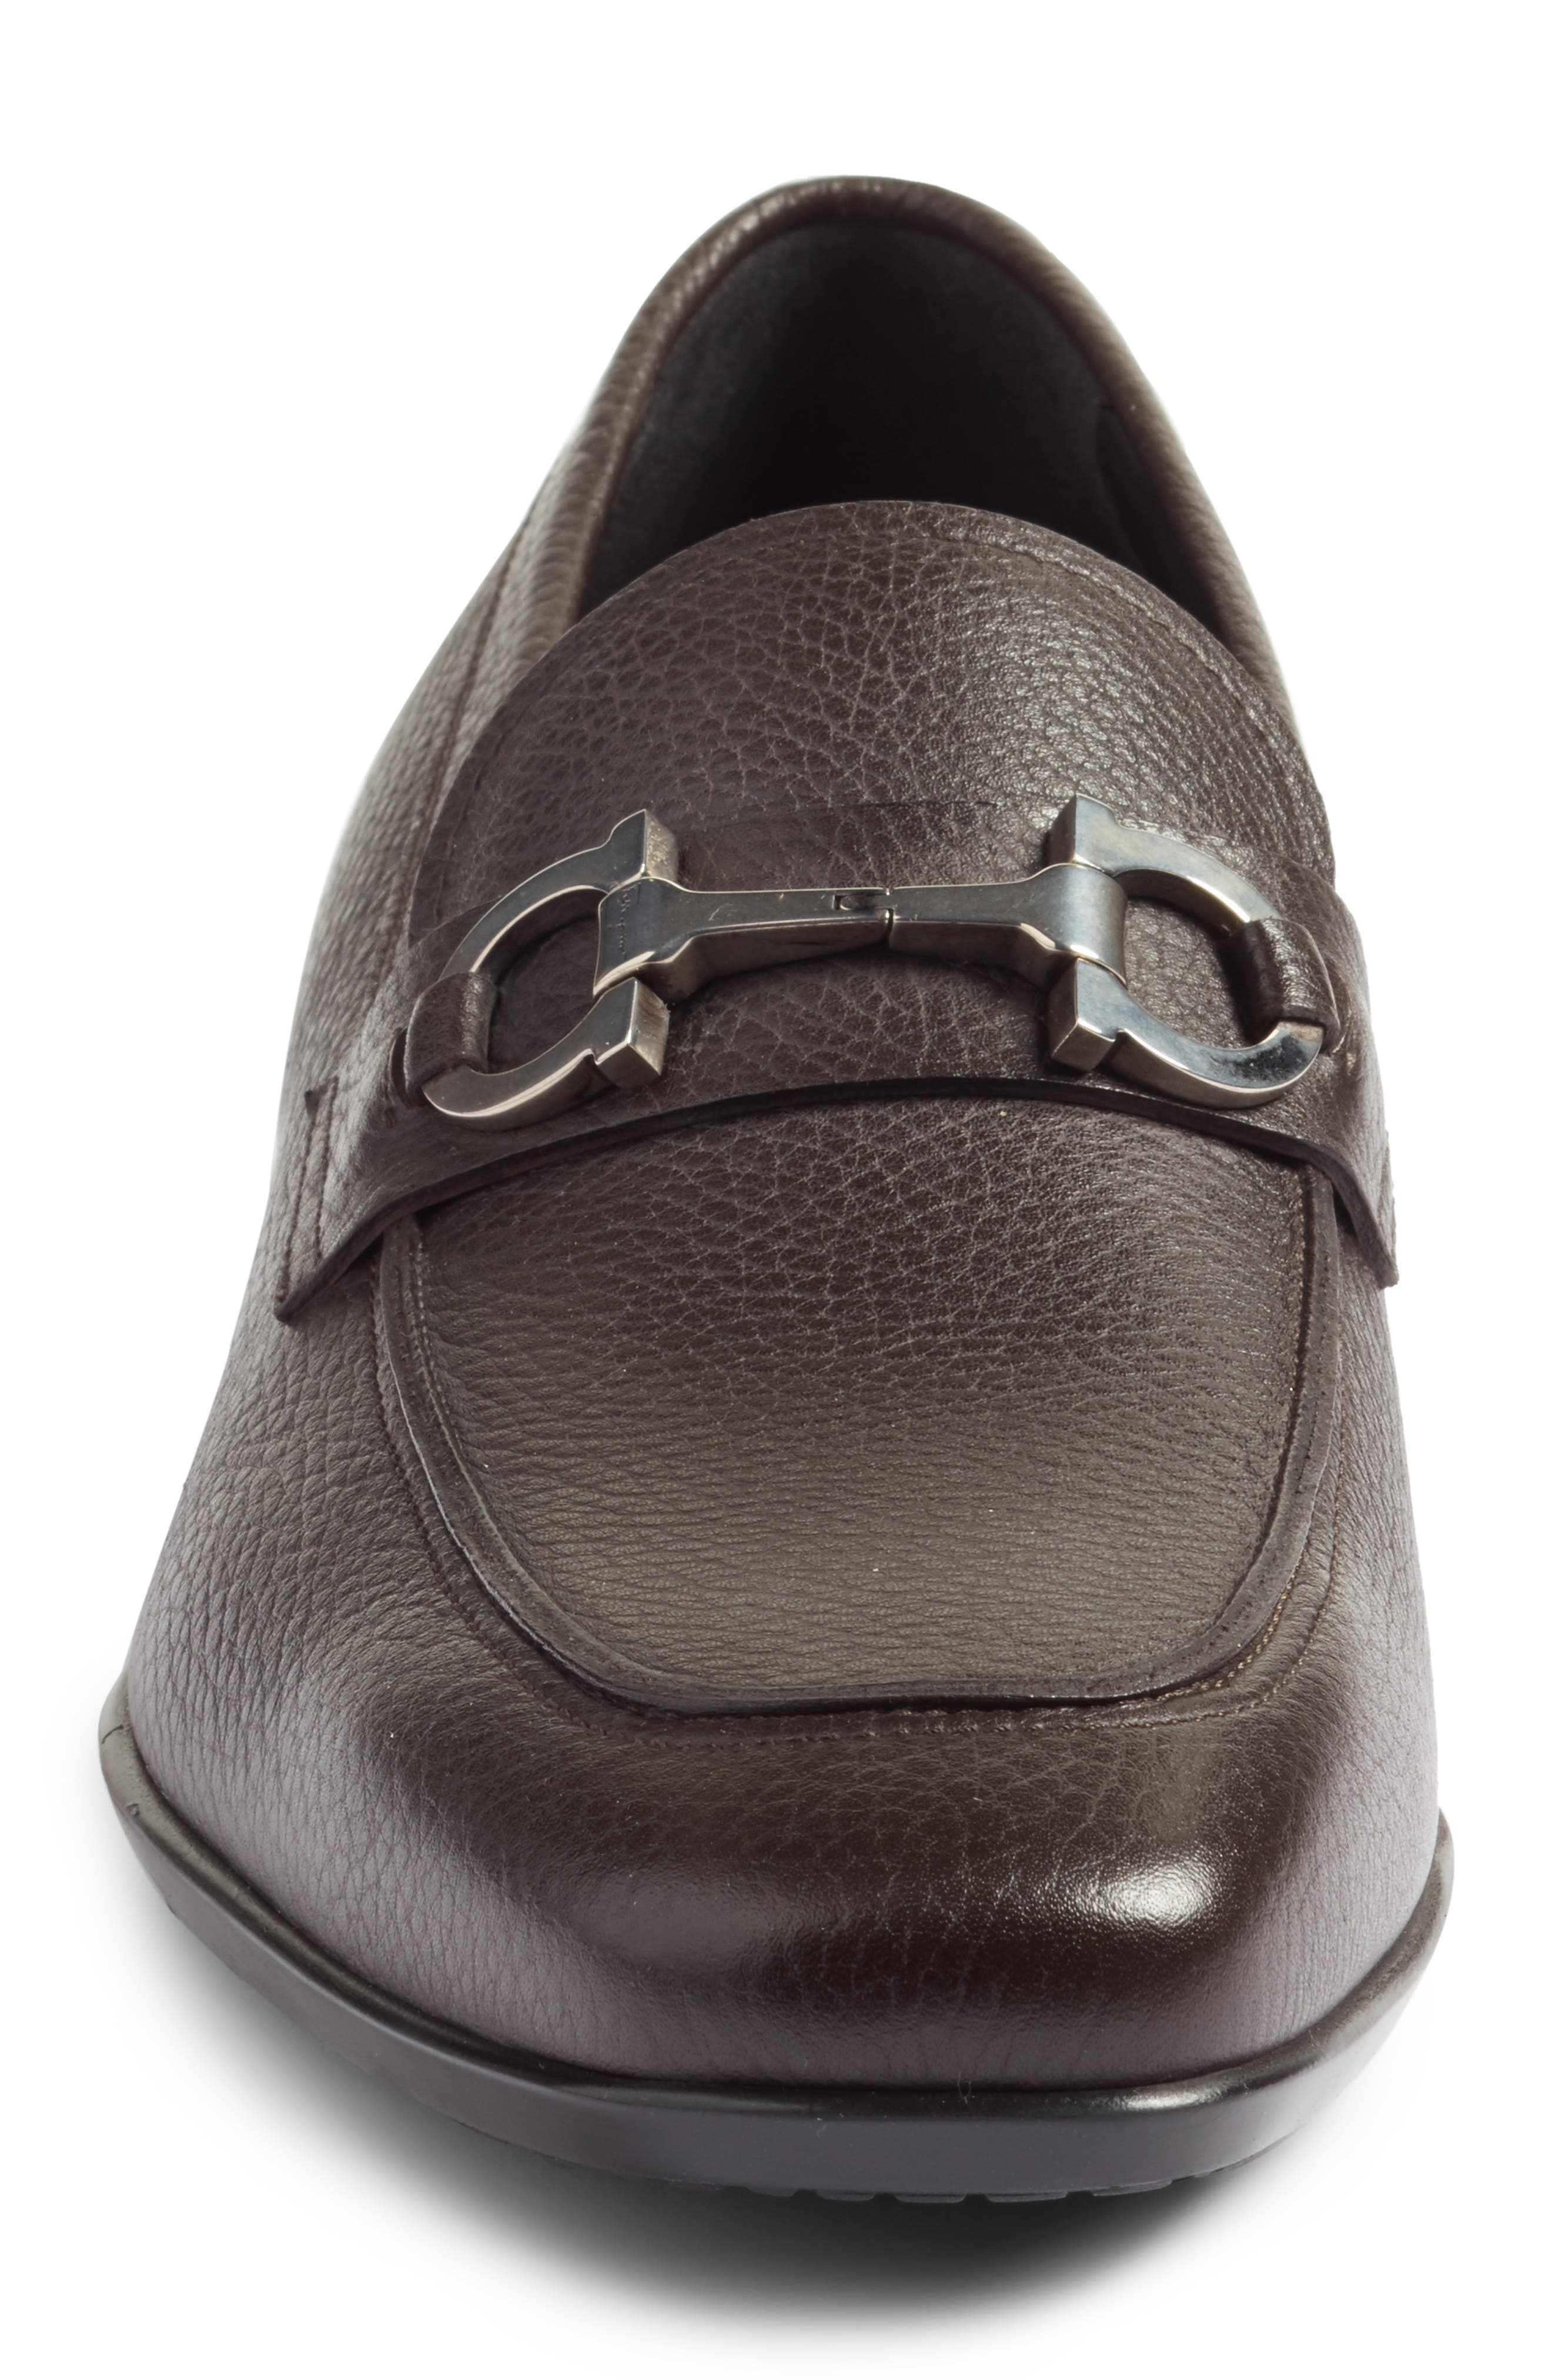 Bit Loafer,                             Alternate thumbnail 4, color,                             Hickory Leather